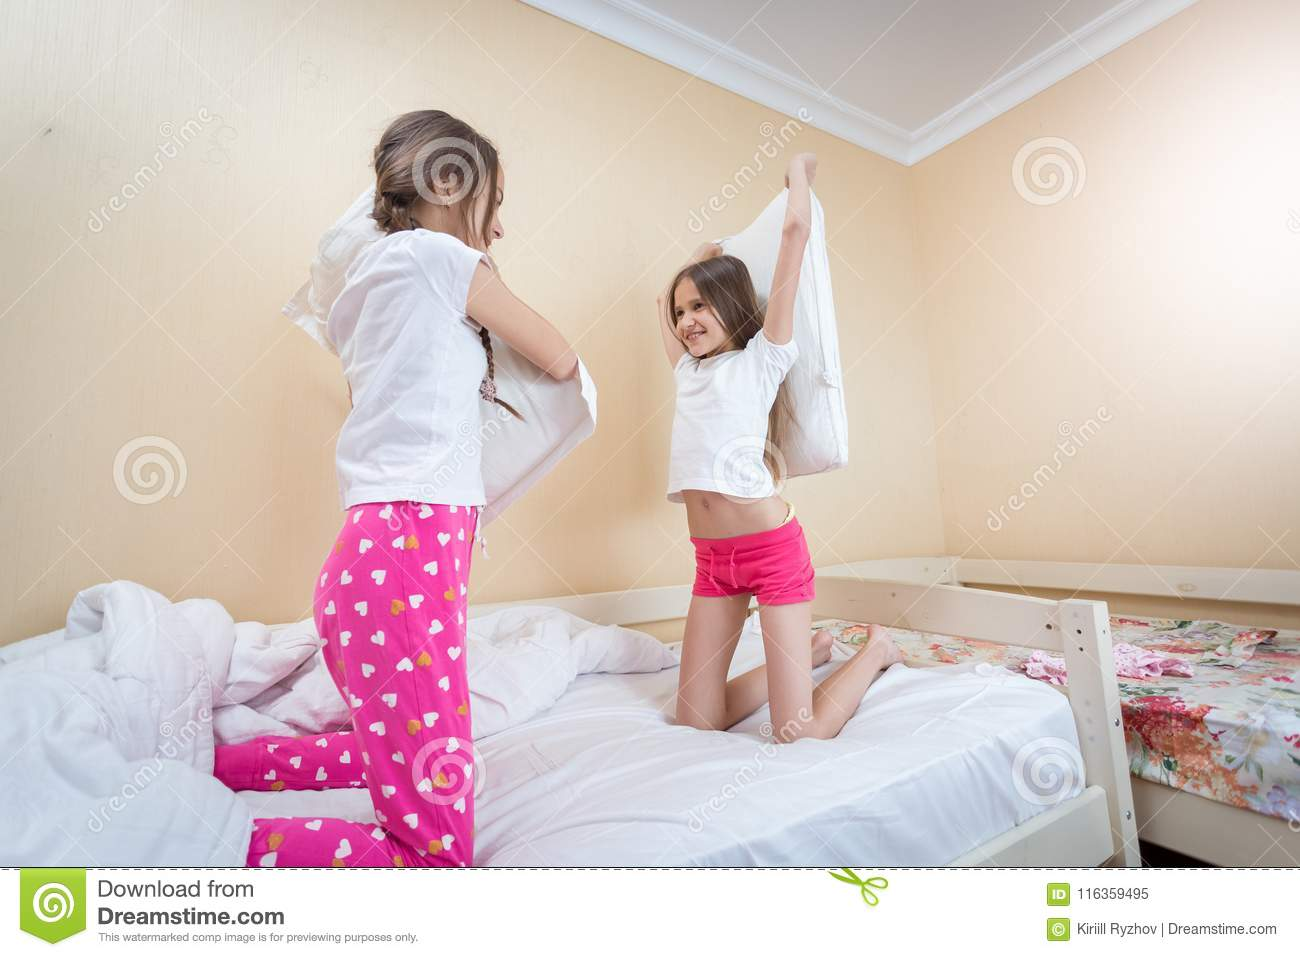 Two Beautiful Girls Fighting With Pillows On Bed At Bedroom ...